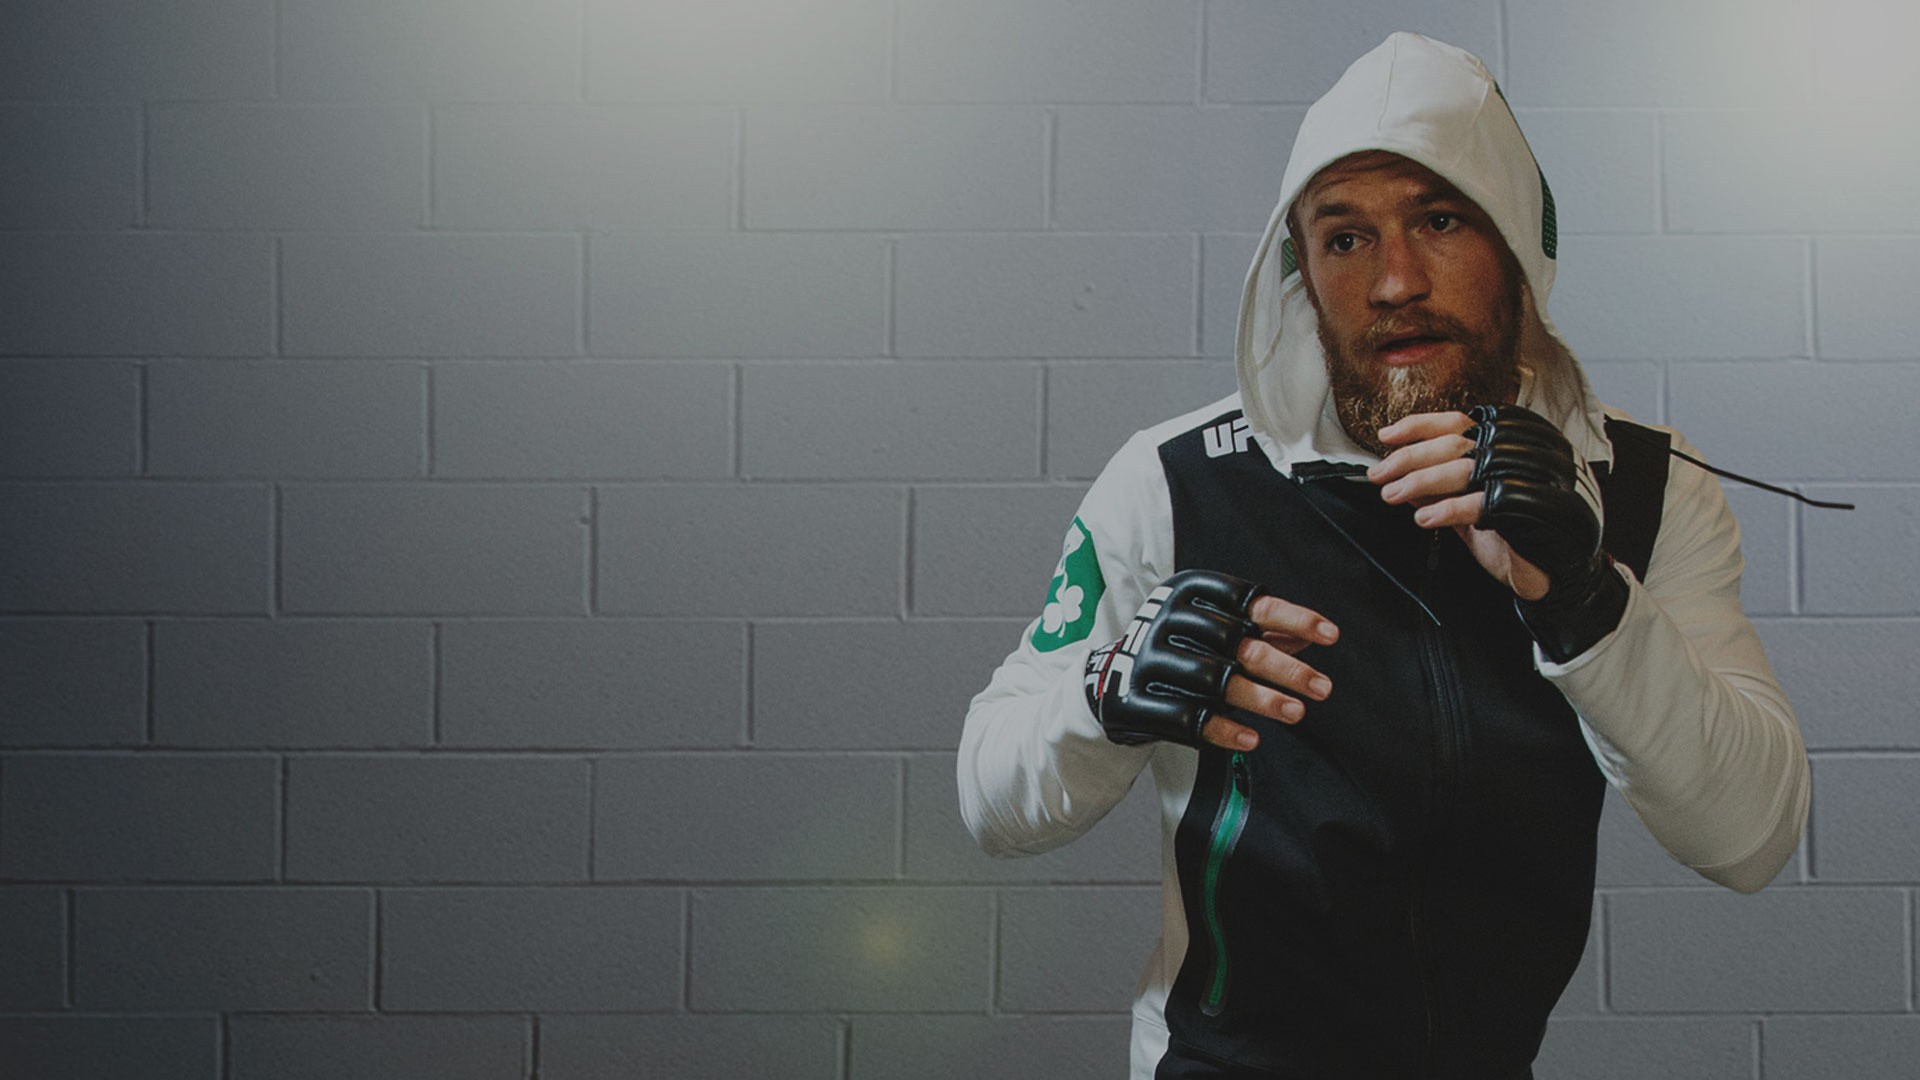 Conor McGregor wallpaper ·① Download free full HD wallpapers of Conor McGregor (MMA fighter) for ...